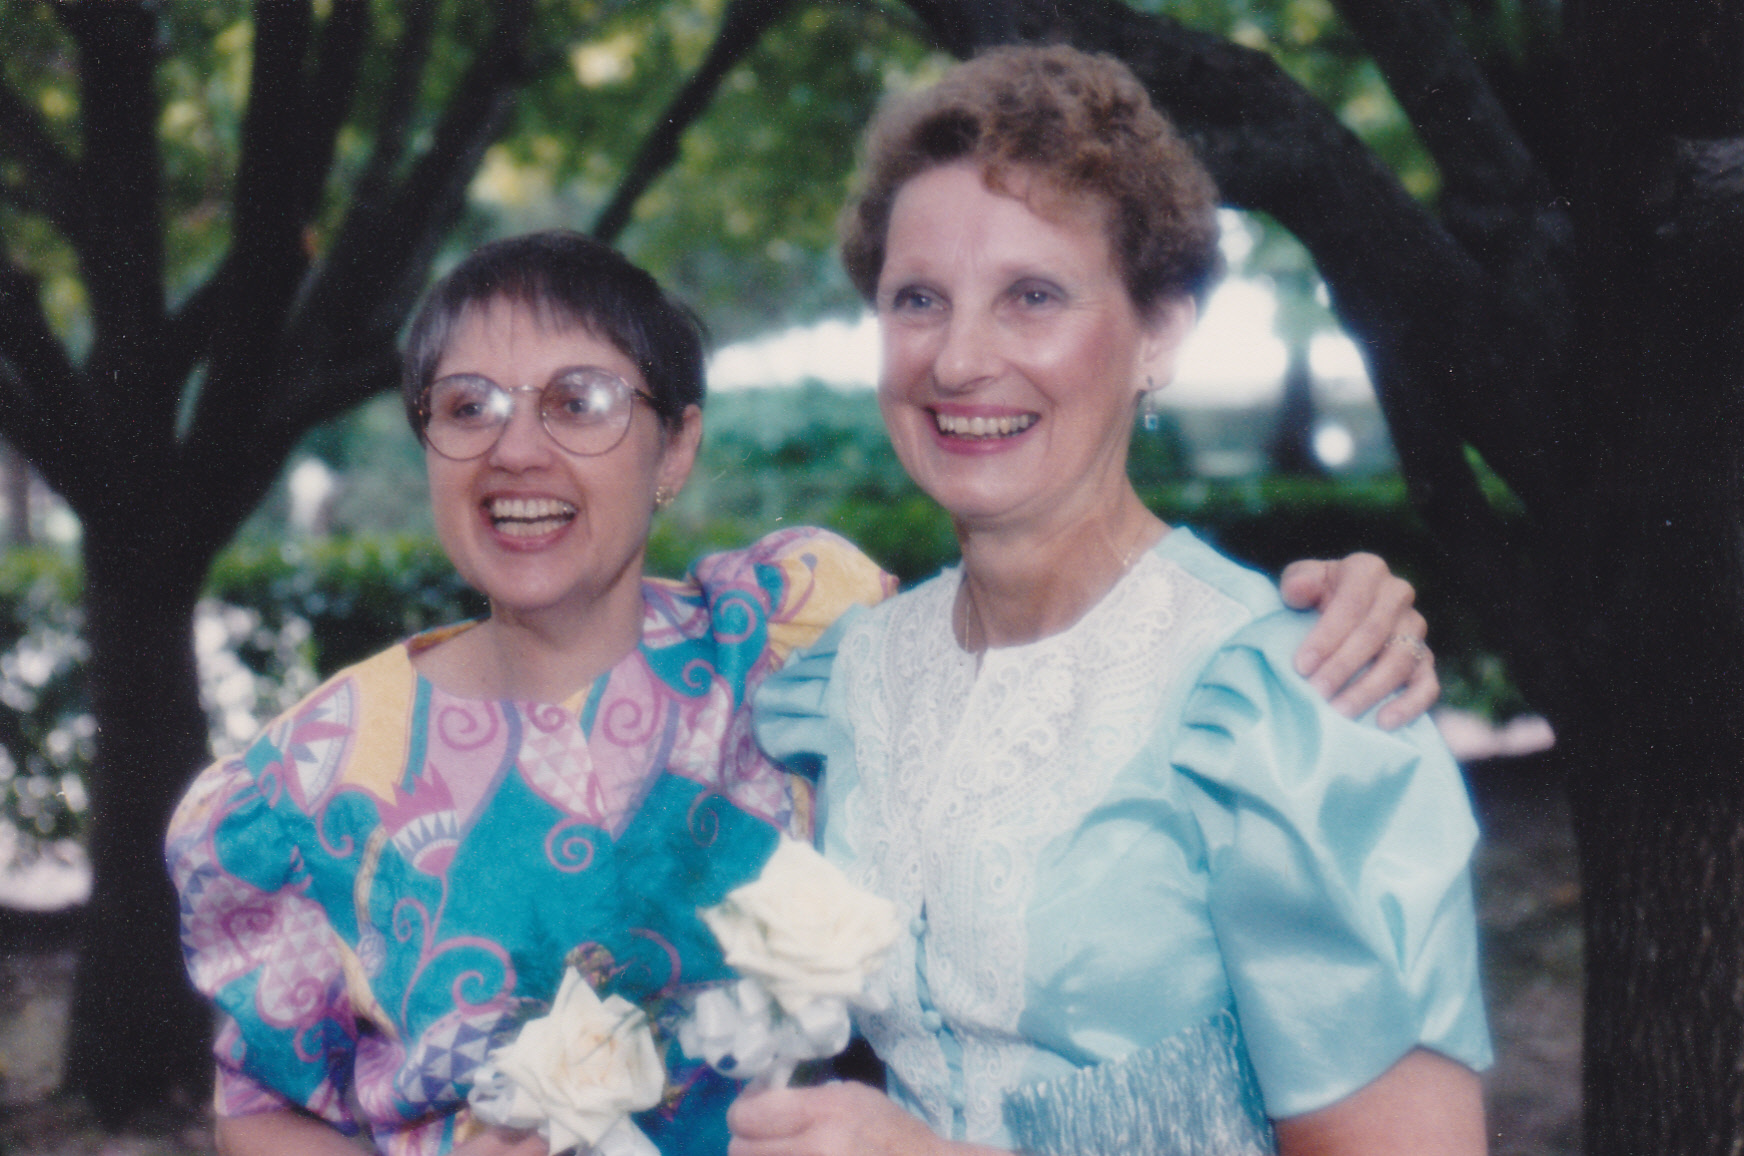 Image: two white women in party dresses, one with straight brown hair and glasses, the other with curly hair; both holding white roses.